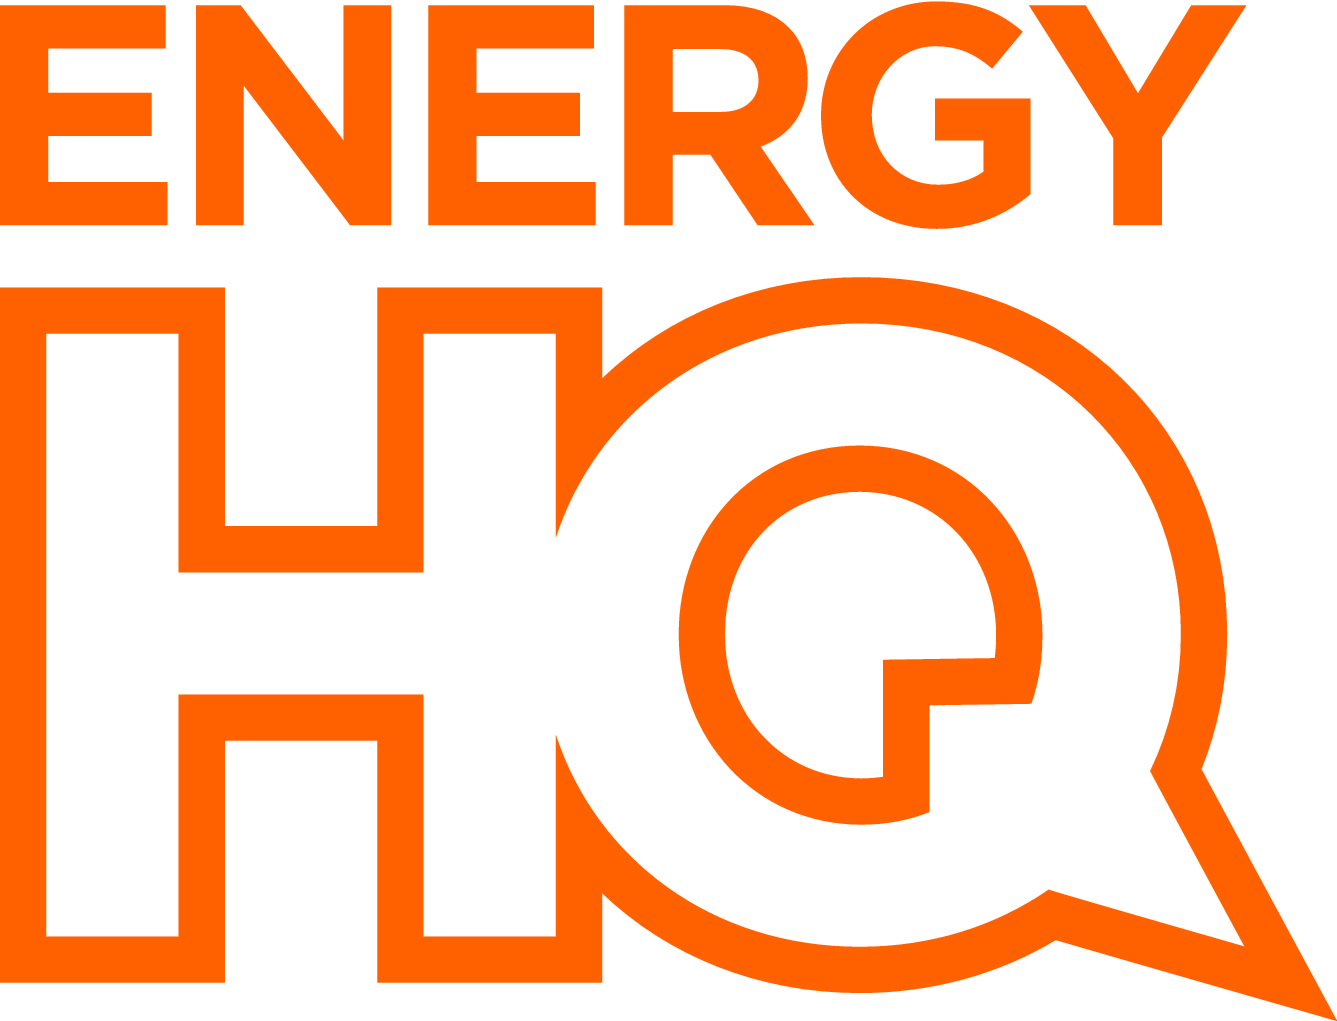 EnergyHQ, Powered by OERB